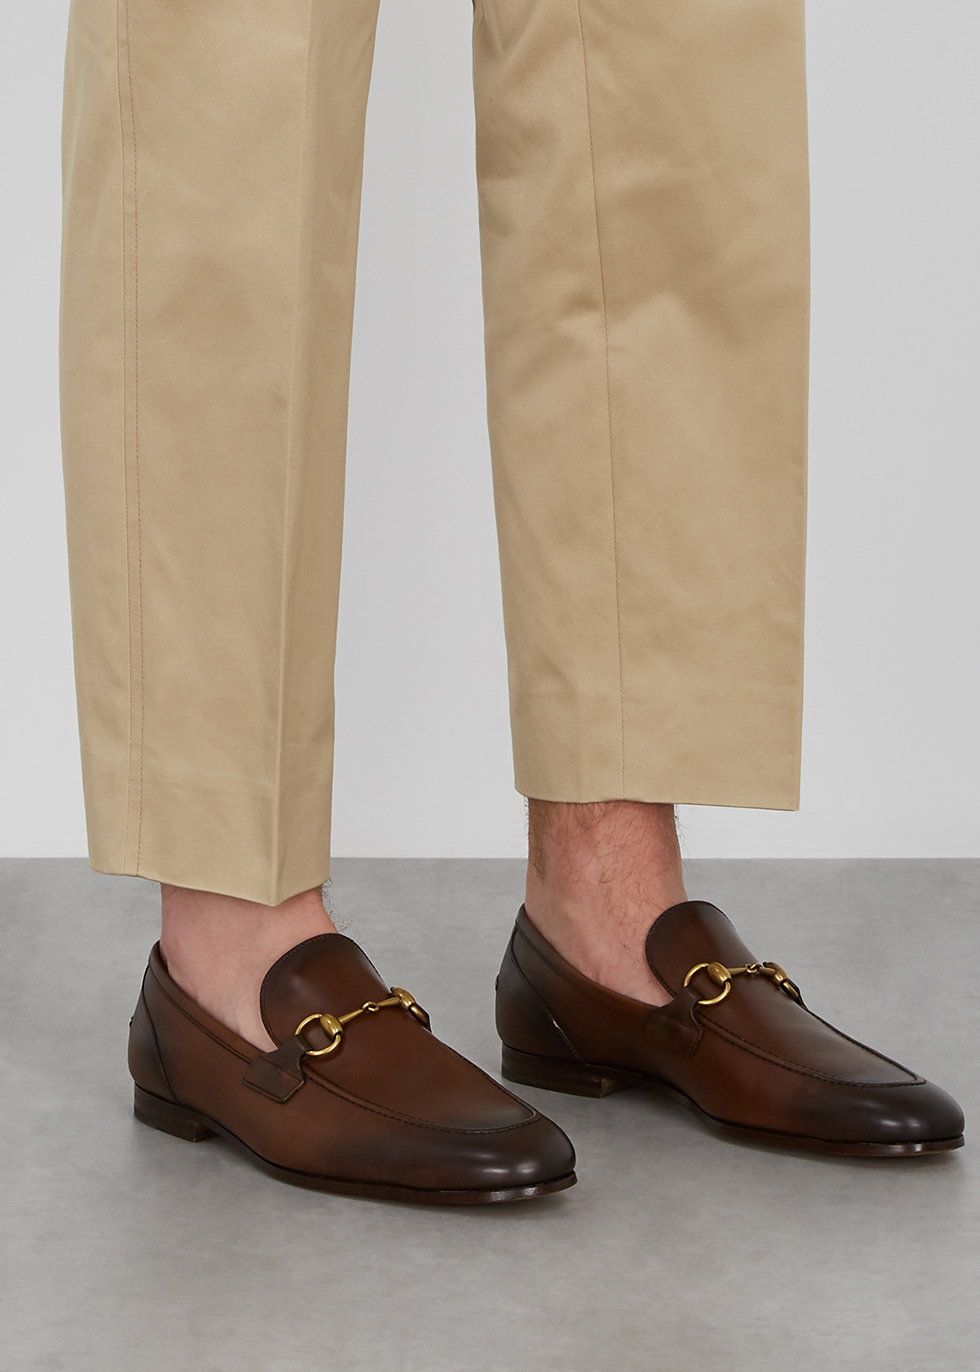 Gucci Jordaan brown leather loafers